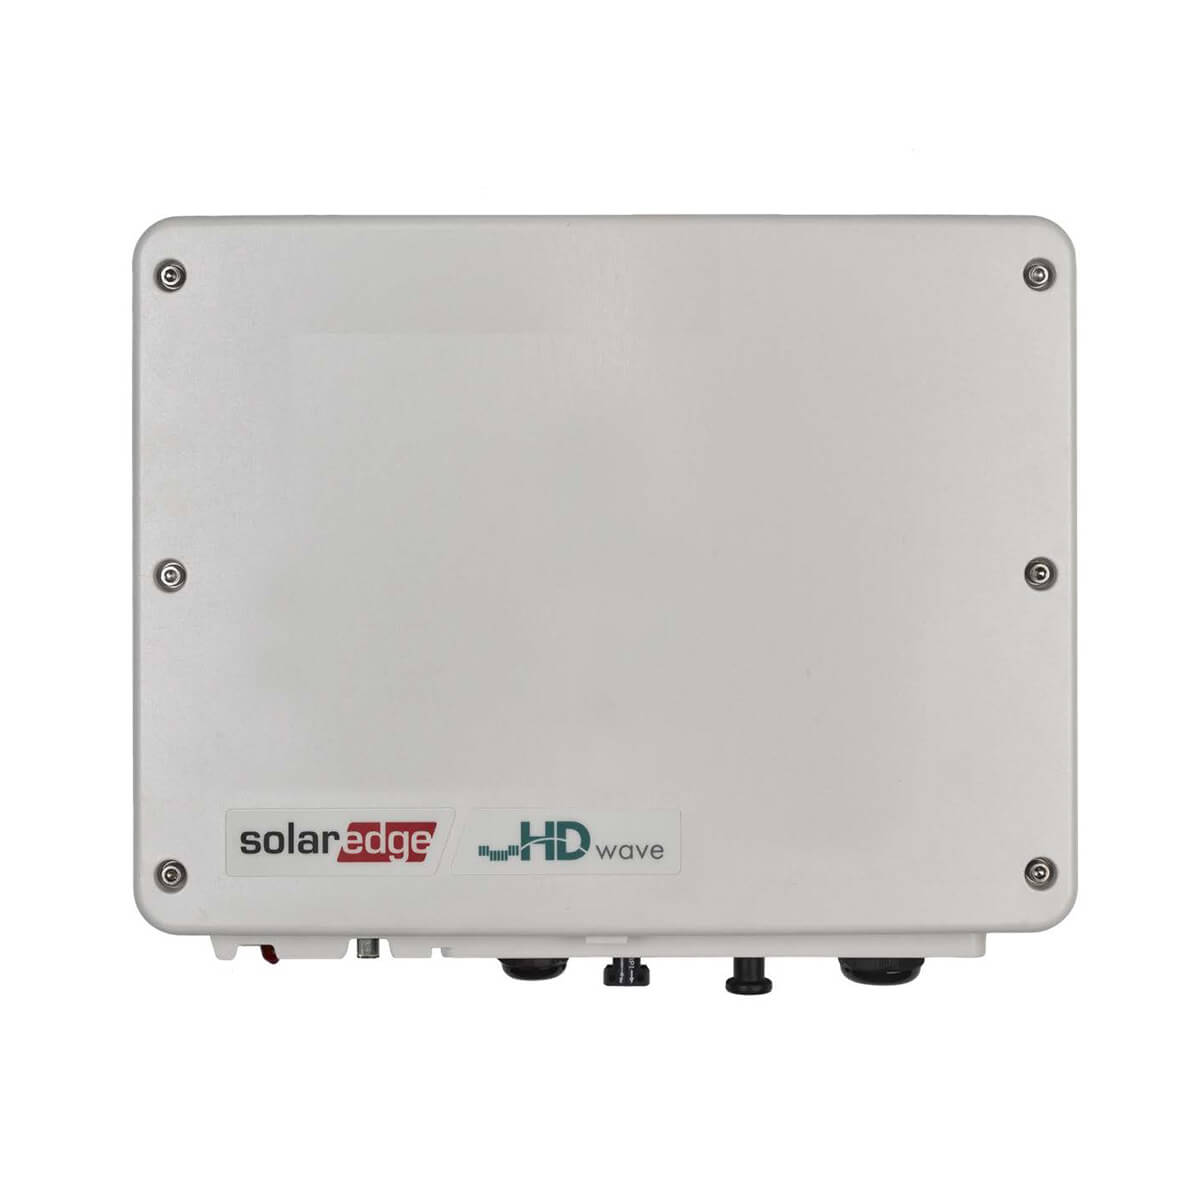 solaredge 4kW inverter, solaredge se4000h 4kW inverter, solaredge se4000h inverter, solaredge se4000h, solaredge 4 kW